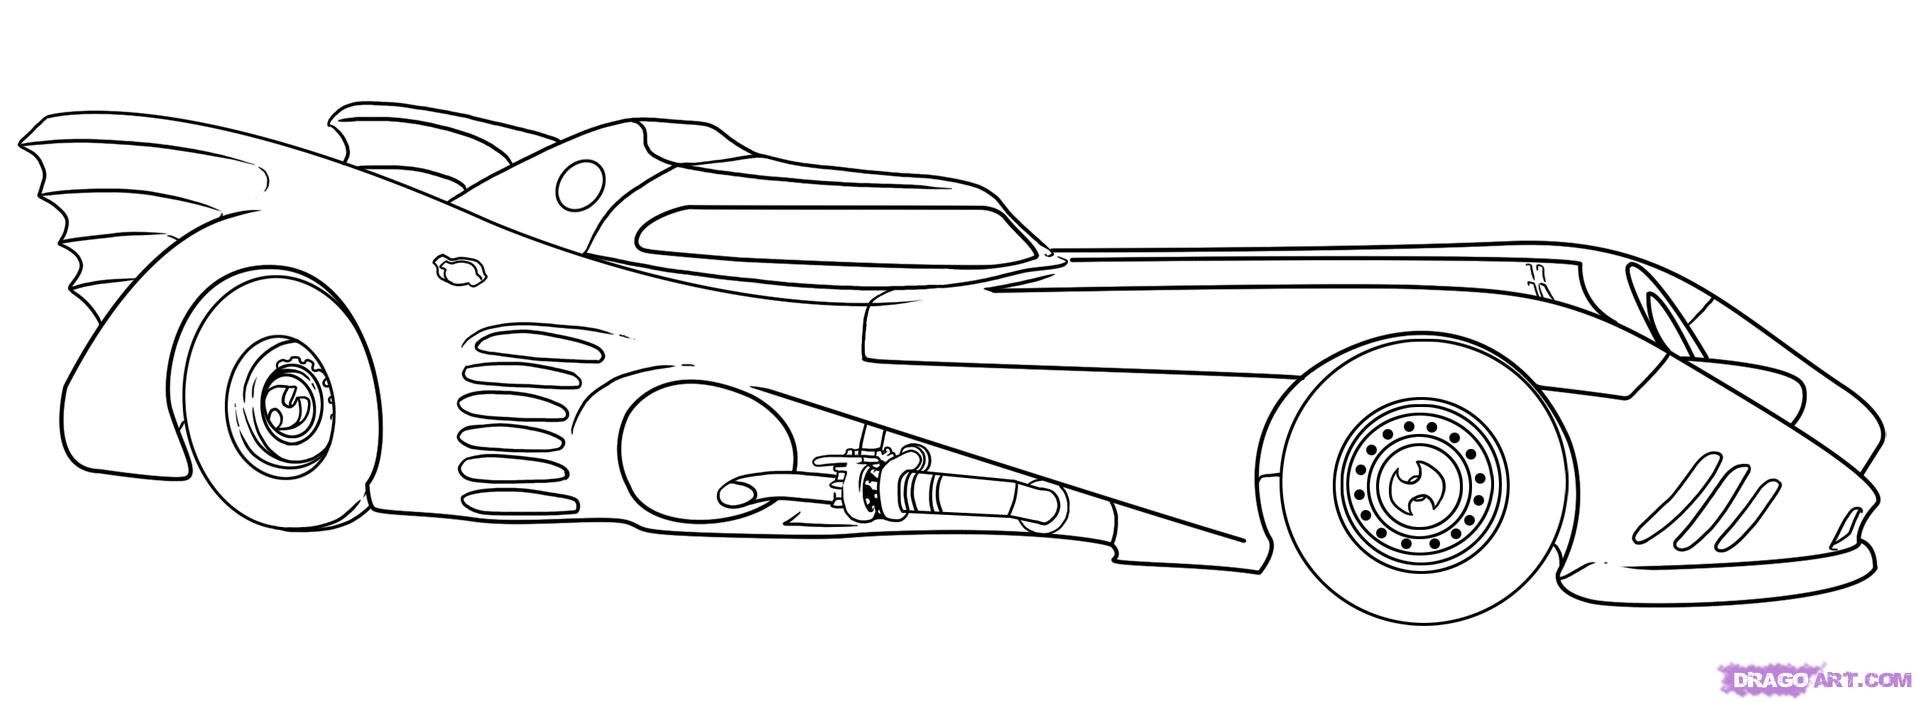 Batmobile Coloring Pages High Quality Coloring Pages Coloring Home